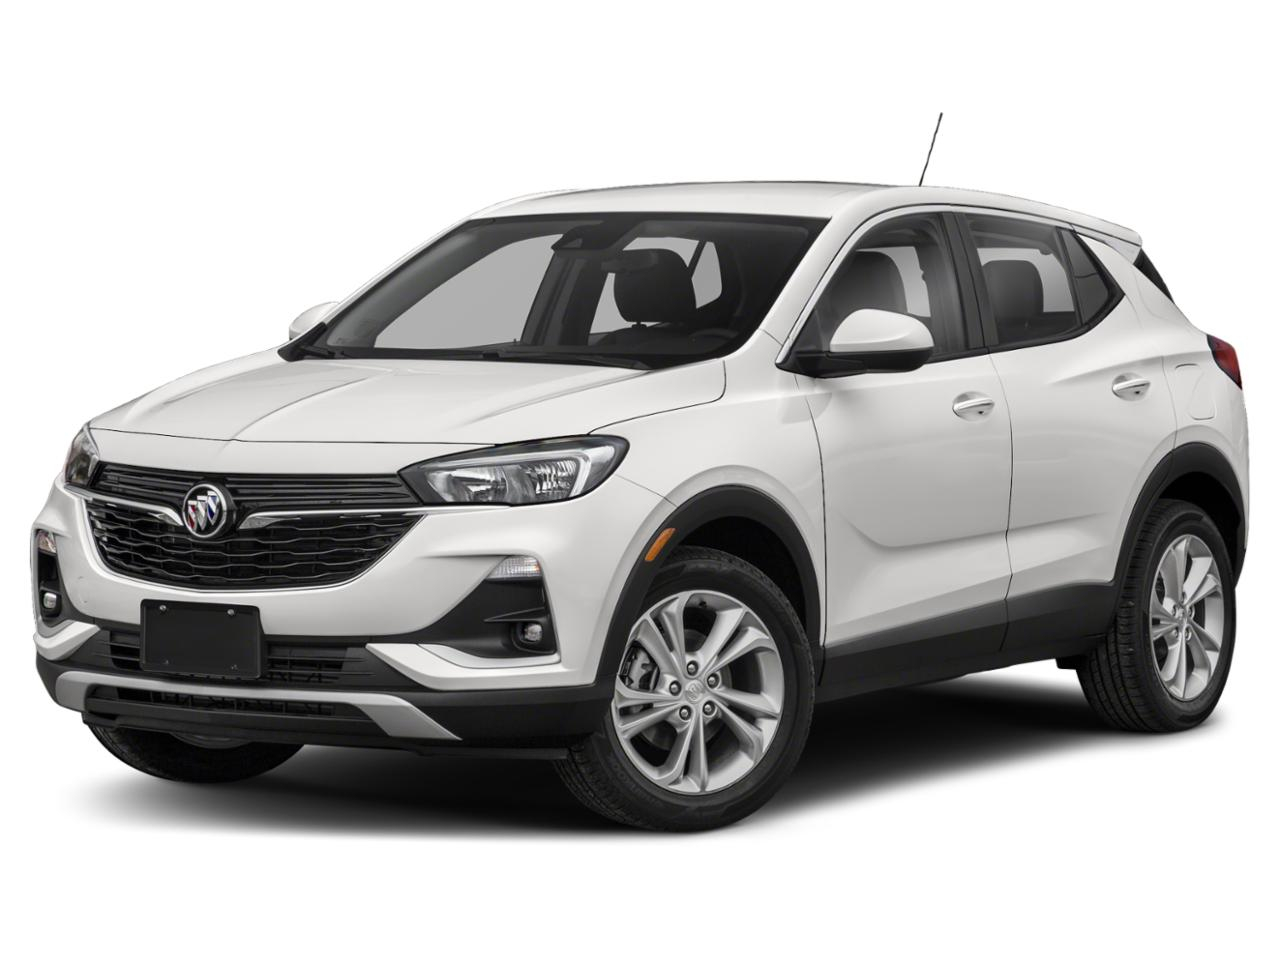 Learn About This 2020 Buick Encore Gx For Sale In Tacoma 2021 Buick Encore Gx Configurations, Towing Capacity, Lease Deals